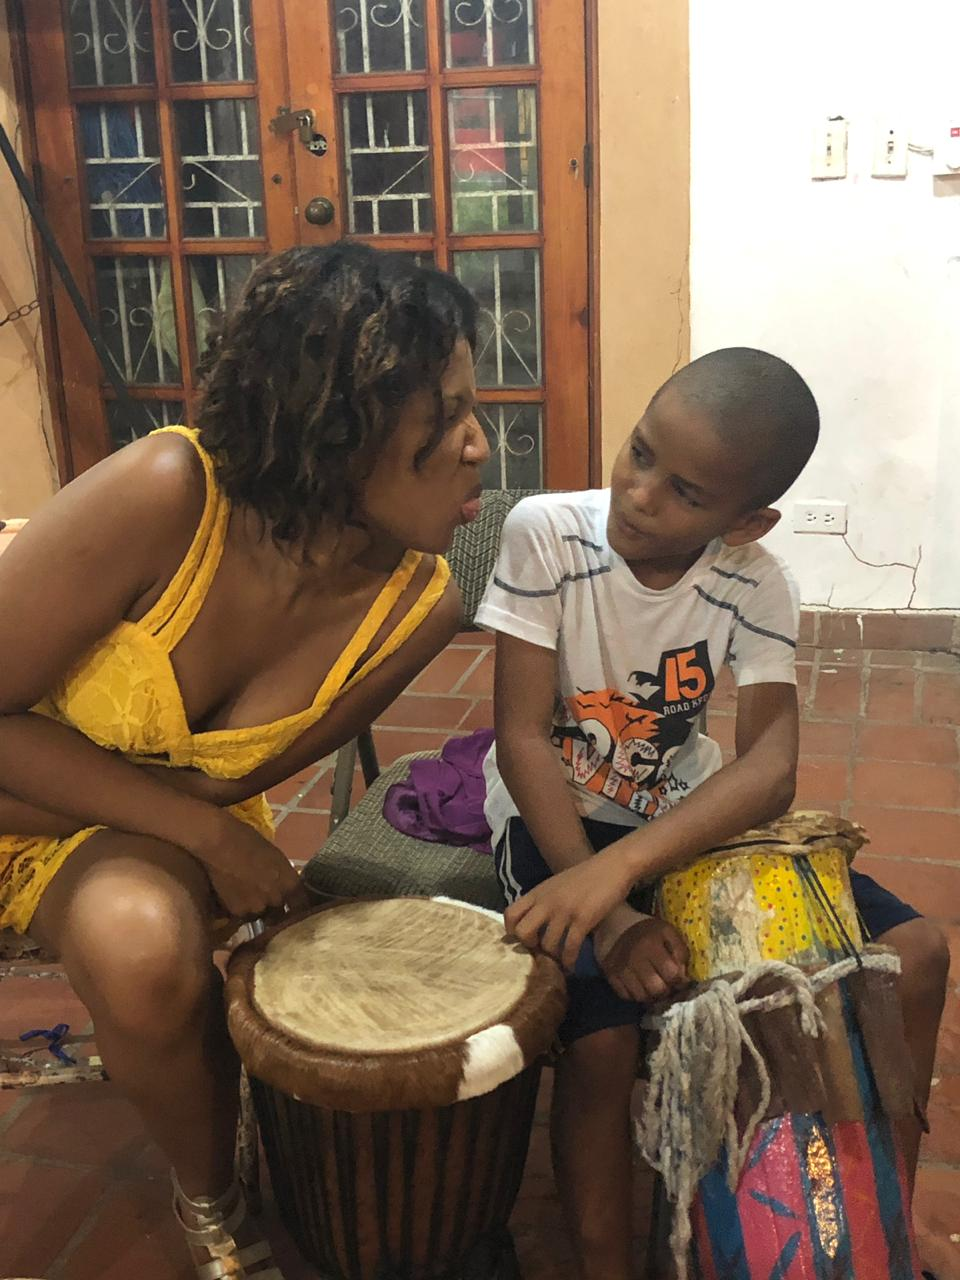 Diosamary Loré, Director of Sales at El Otro Lado, clowns around with Elian 8-year old student at the Little Rhythm School which provides local kids with free musical classes with support of the Bahia Portobelo Foundation.